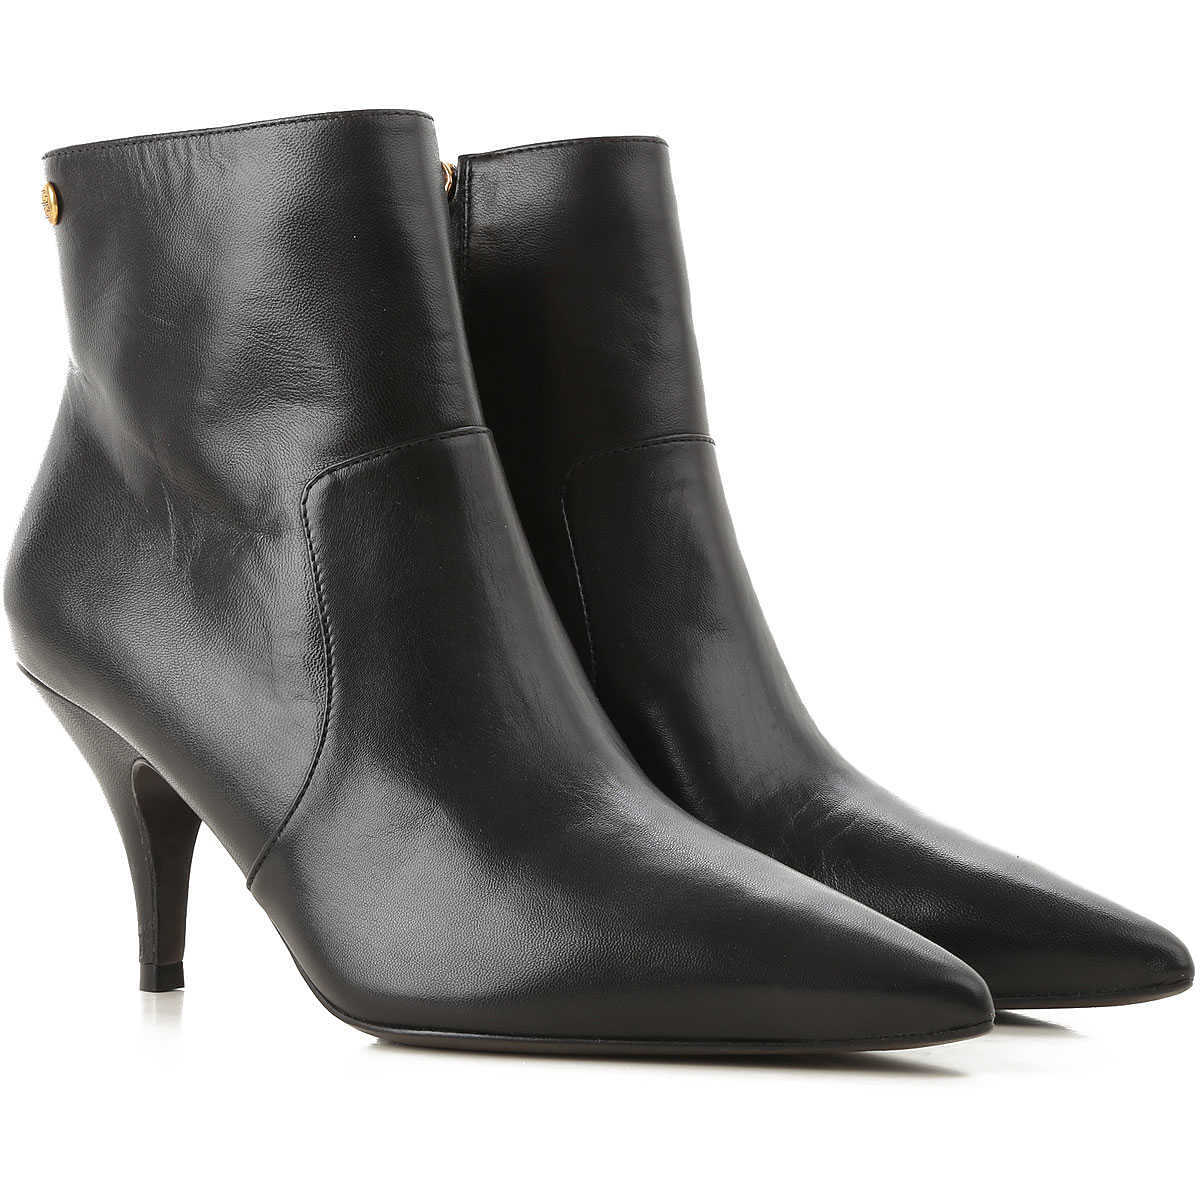 Tory Burch Boots for Women Booties On Sale DK - GOOFASH - Womens BOOTS